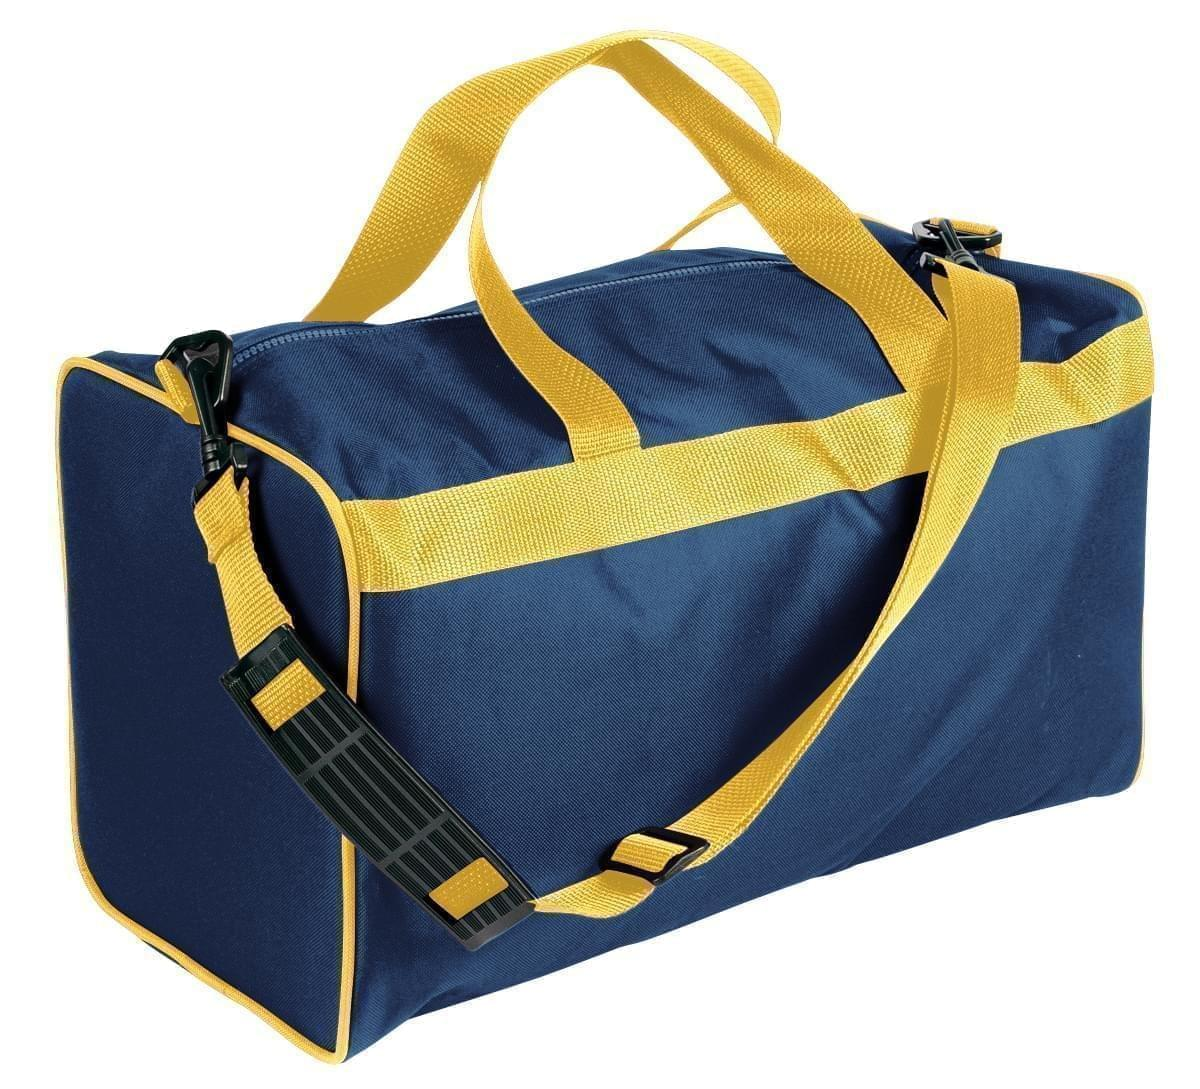 USA Made Nylon Poly Weekend Duffles, Navy-Gold, WLKX31AAW5